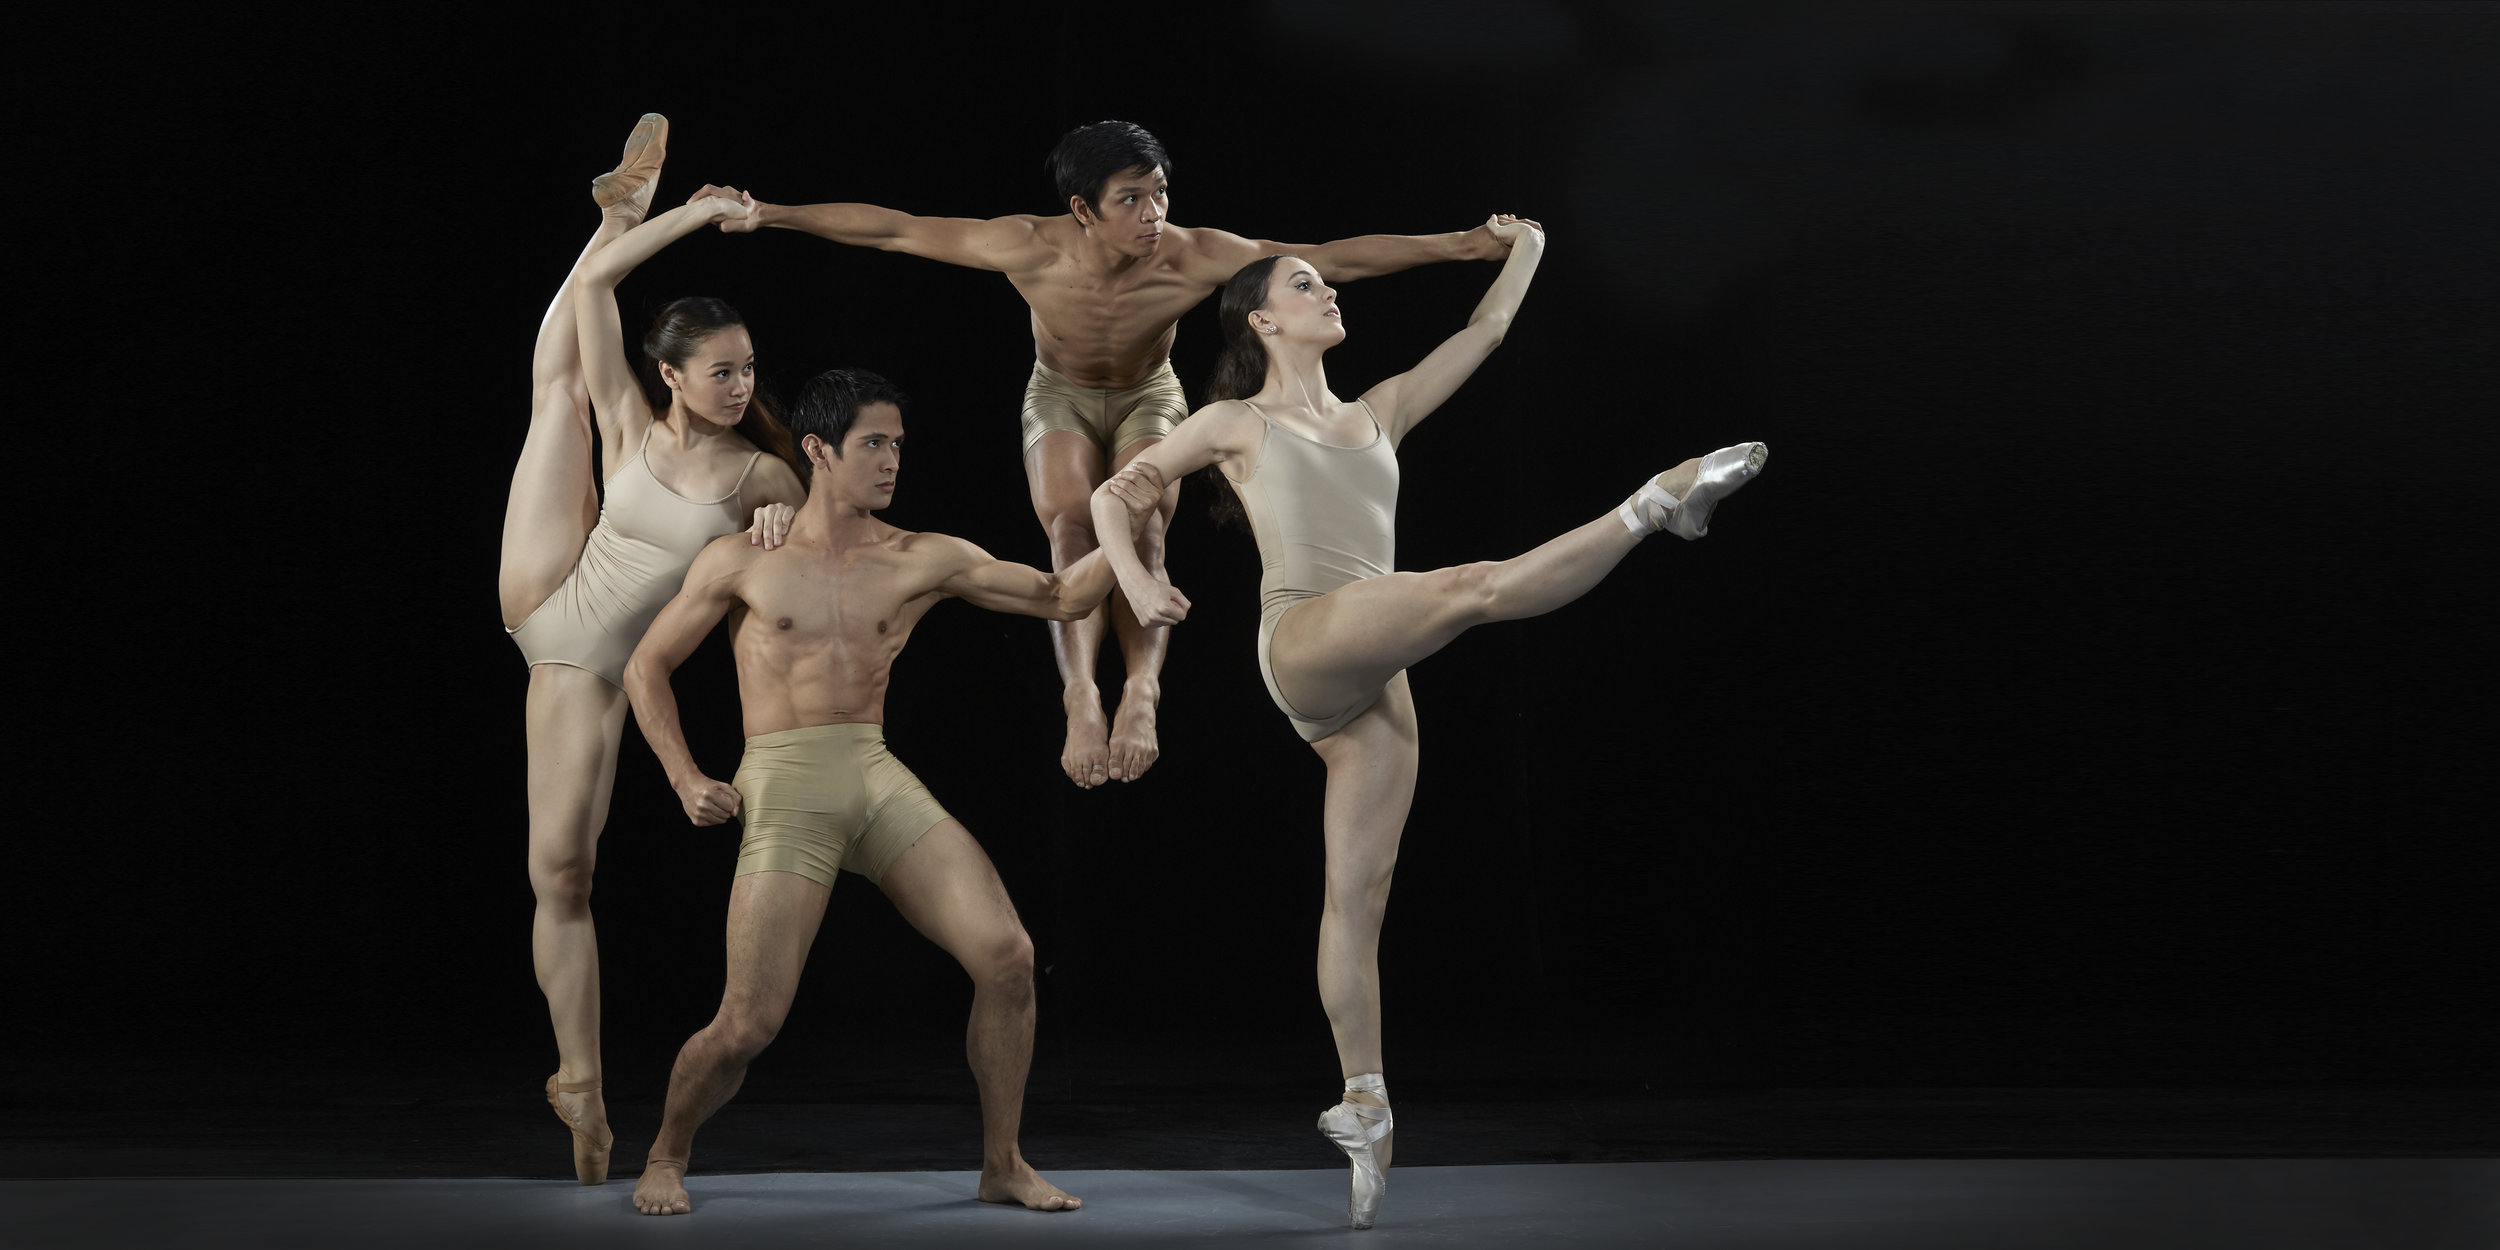 Katherine (rightmost) joins then fellow Ballet Manila principal dancers (from left) Dawna Mangahas, Rudy De Dios and Gerardo Francisco in a photo shoot with master photographer G-nie Arambulo in 2016.